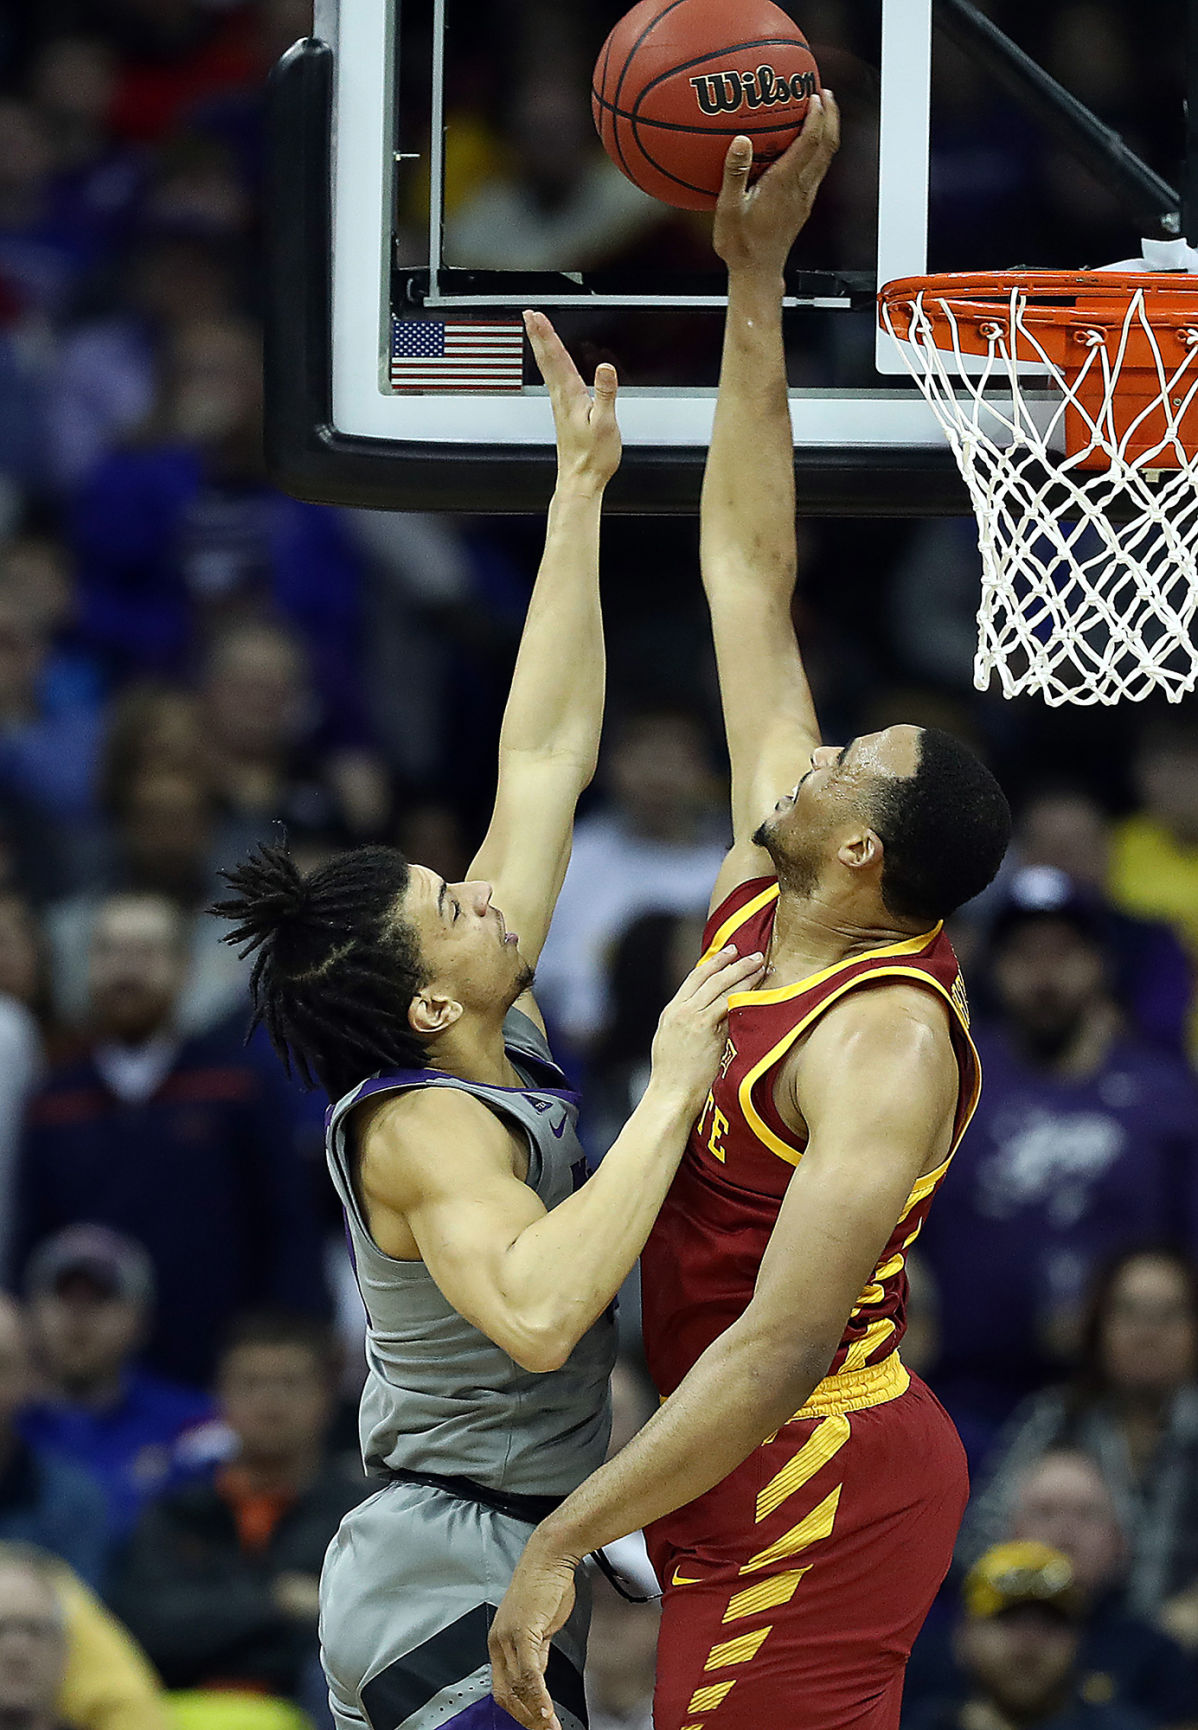 Iowa State's Talen Horton-Tucker, right, blocks a shot by Kansas State's Mike McGuirl during the semifinals of the Big 12 Tournament at Sprint Center in Kansas City, Mo., on March 15, 2019. Iowa State advanced, 63-59. **FOR USE WITH THIS STORY ONLY**